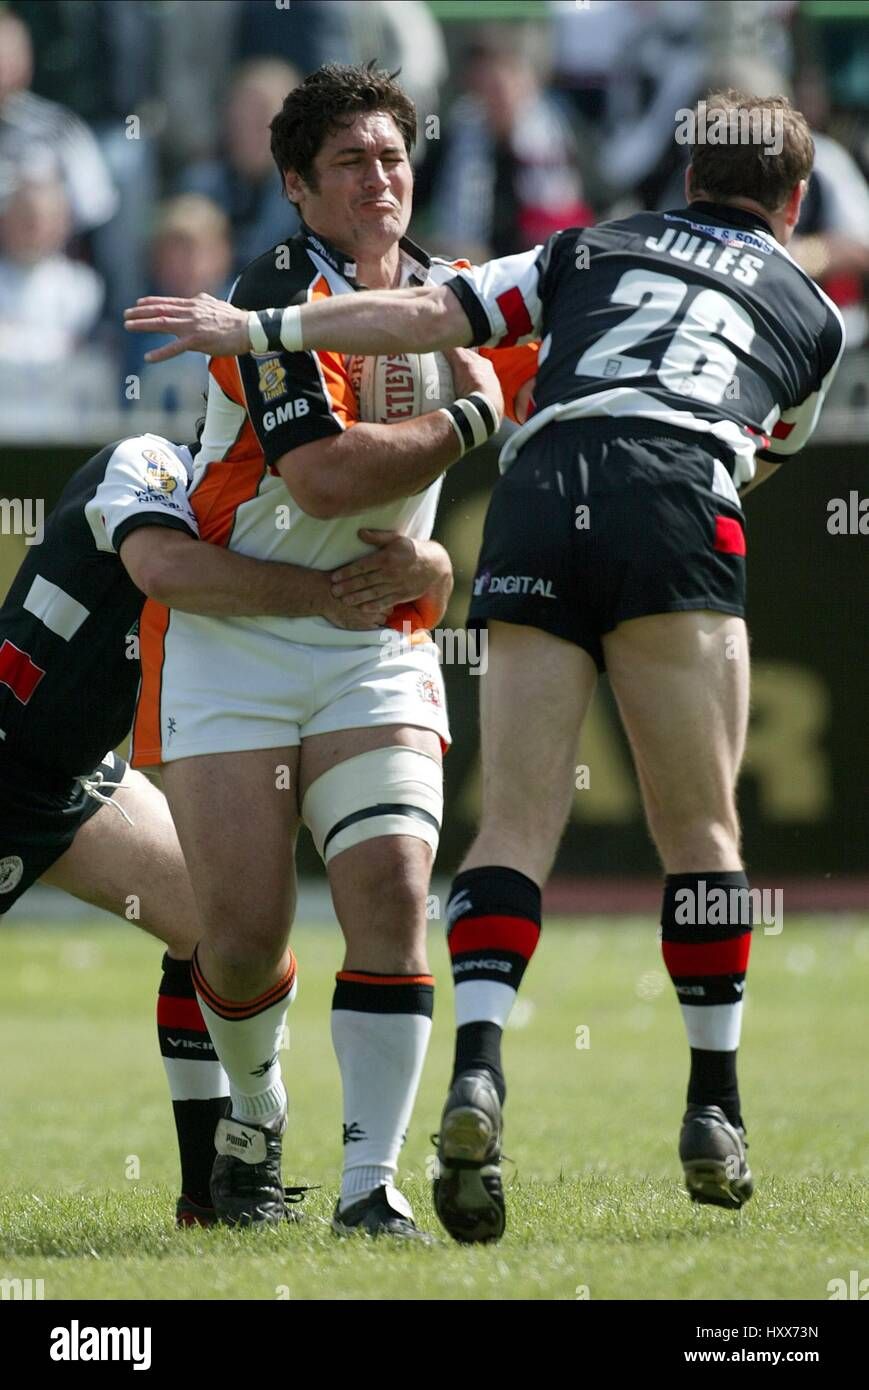 MICHAEL SMITH & JULES O NEIL CASTLEFORD V WIDNES CASTLEFORD RUGBY GROUND CASTLFORD ENGLAND 18 May 2003 - Stock Image